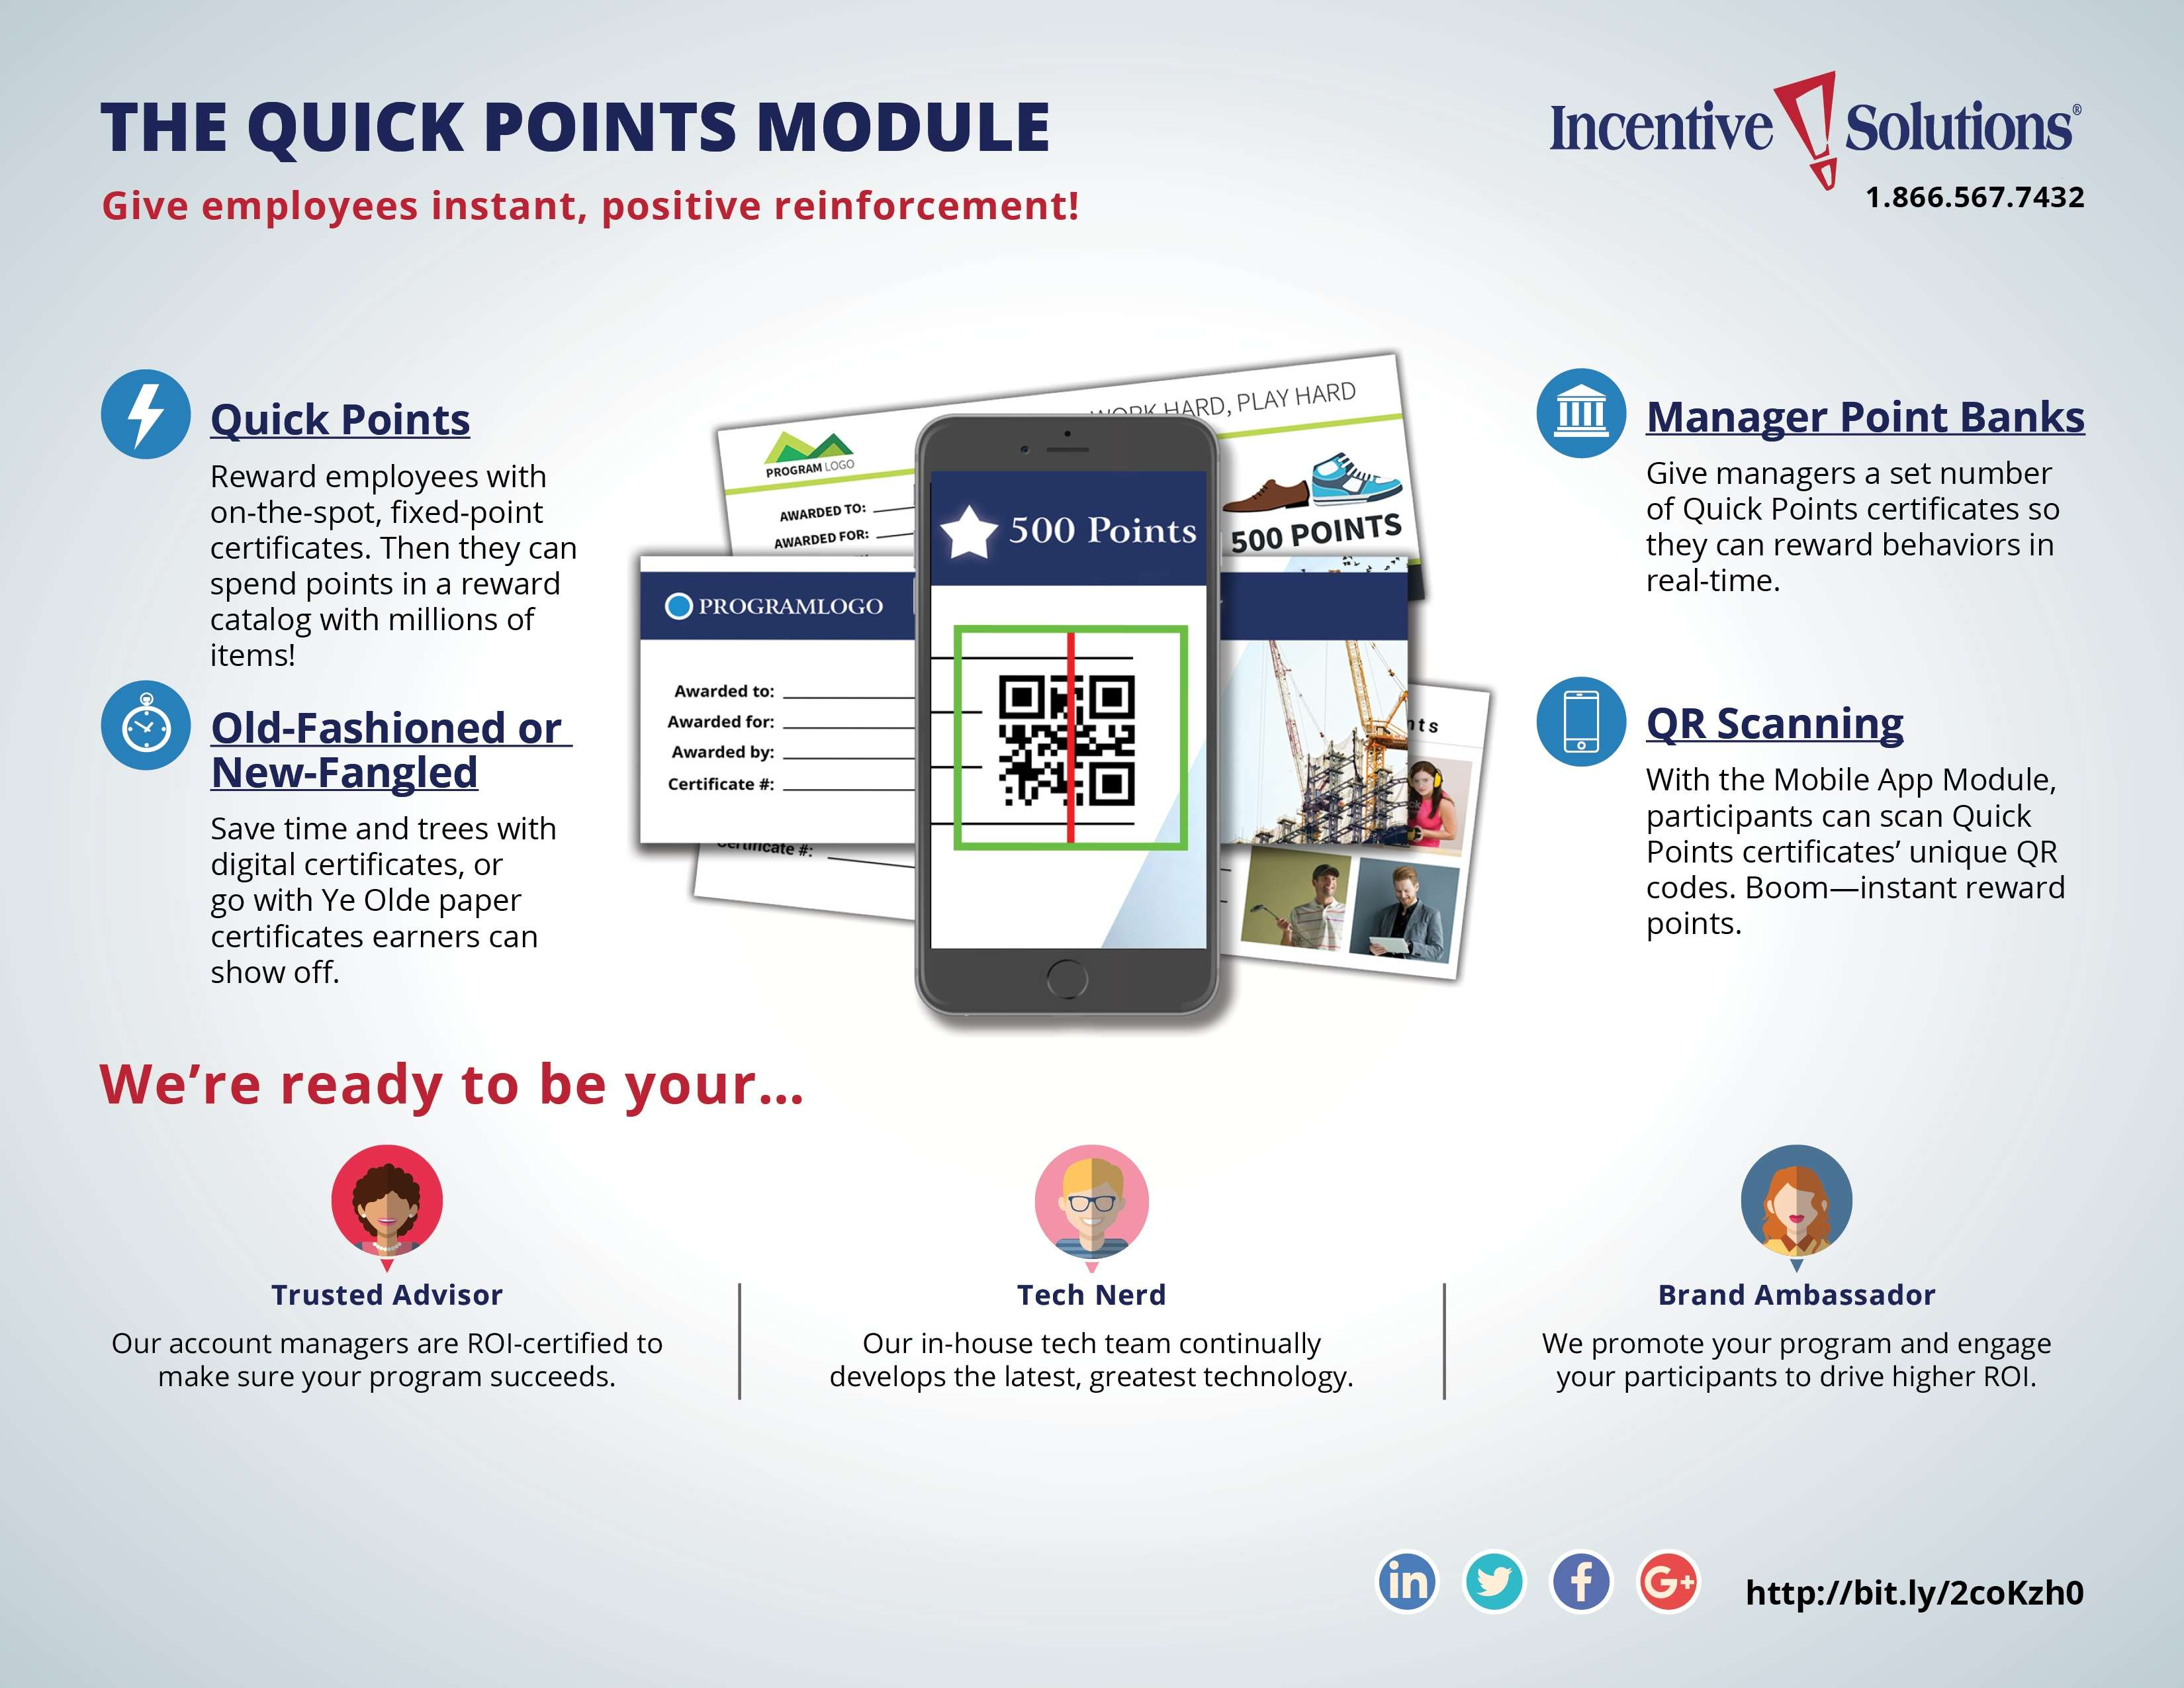 Quick Points Employee Motivation Incentive Solutions Incentive